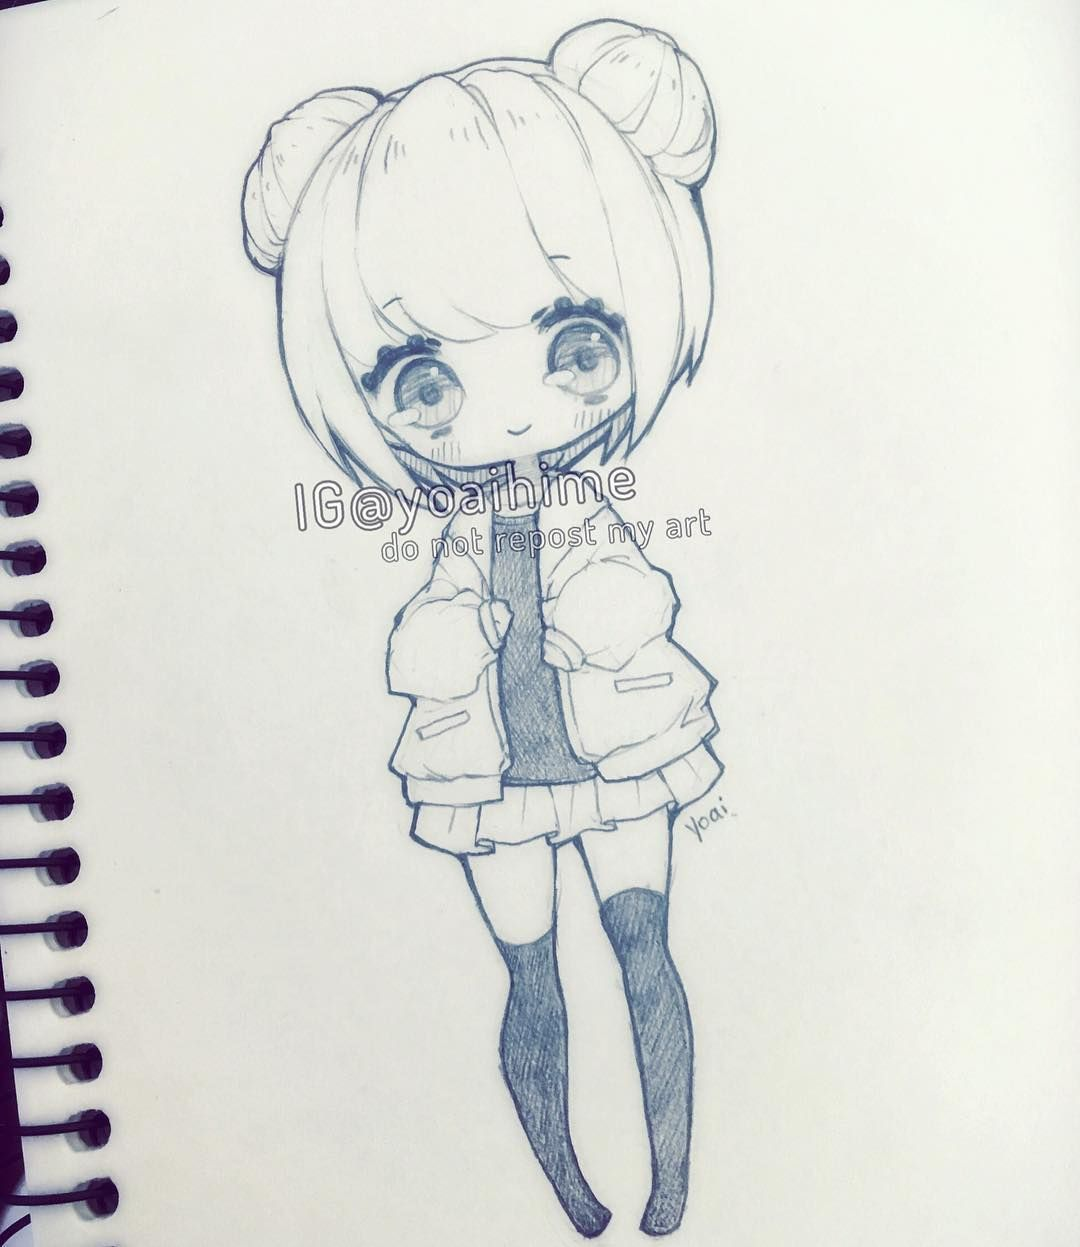 My posts keep failing to upload to instagram hopefully this time it works chibi sketch